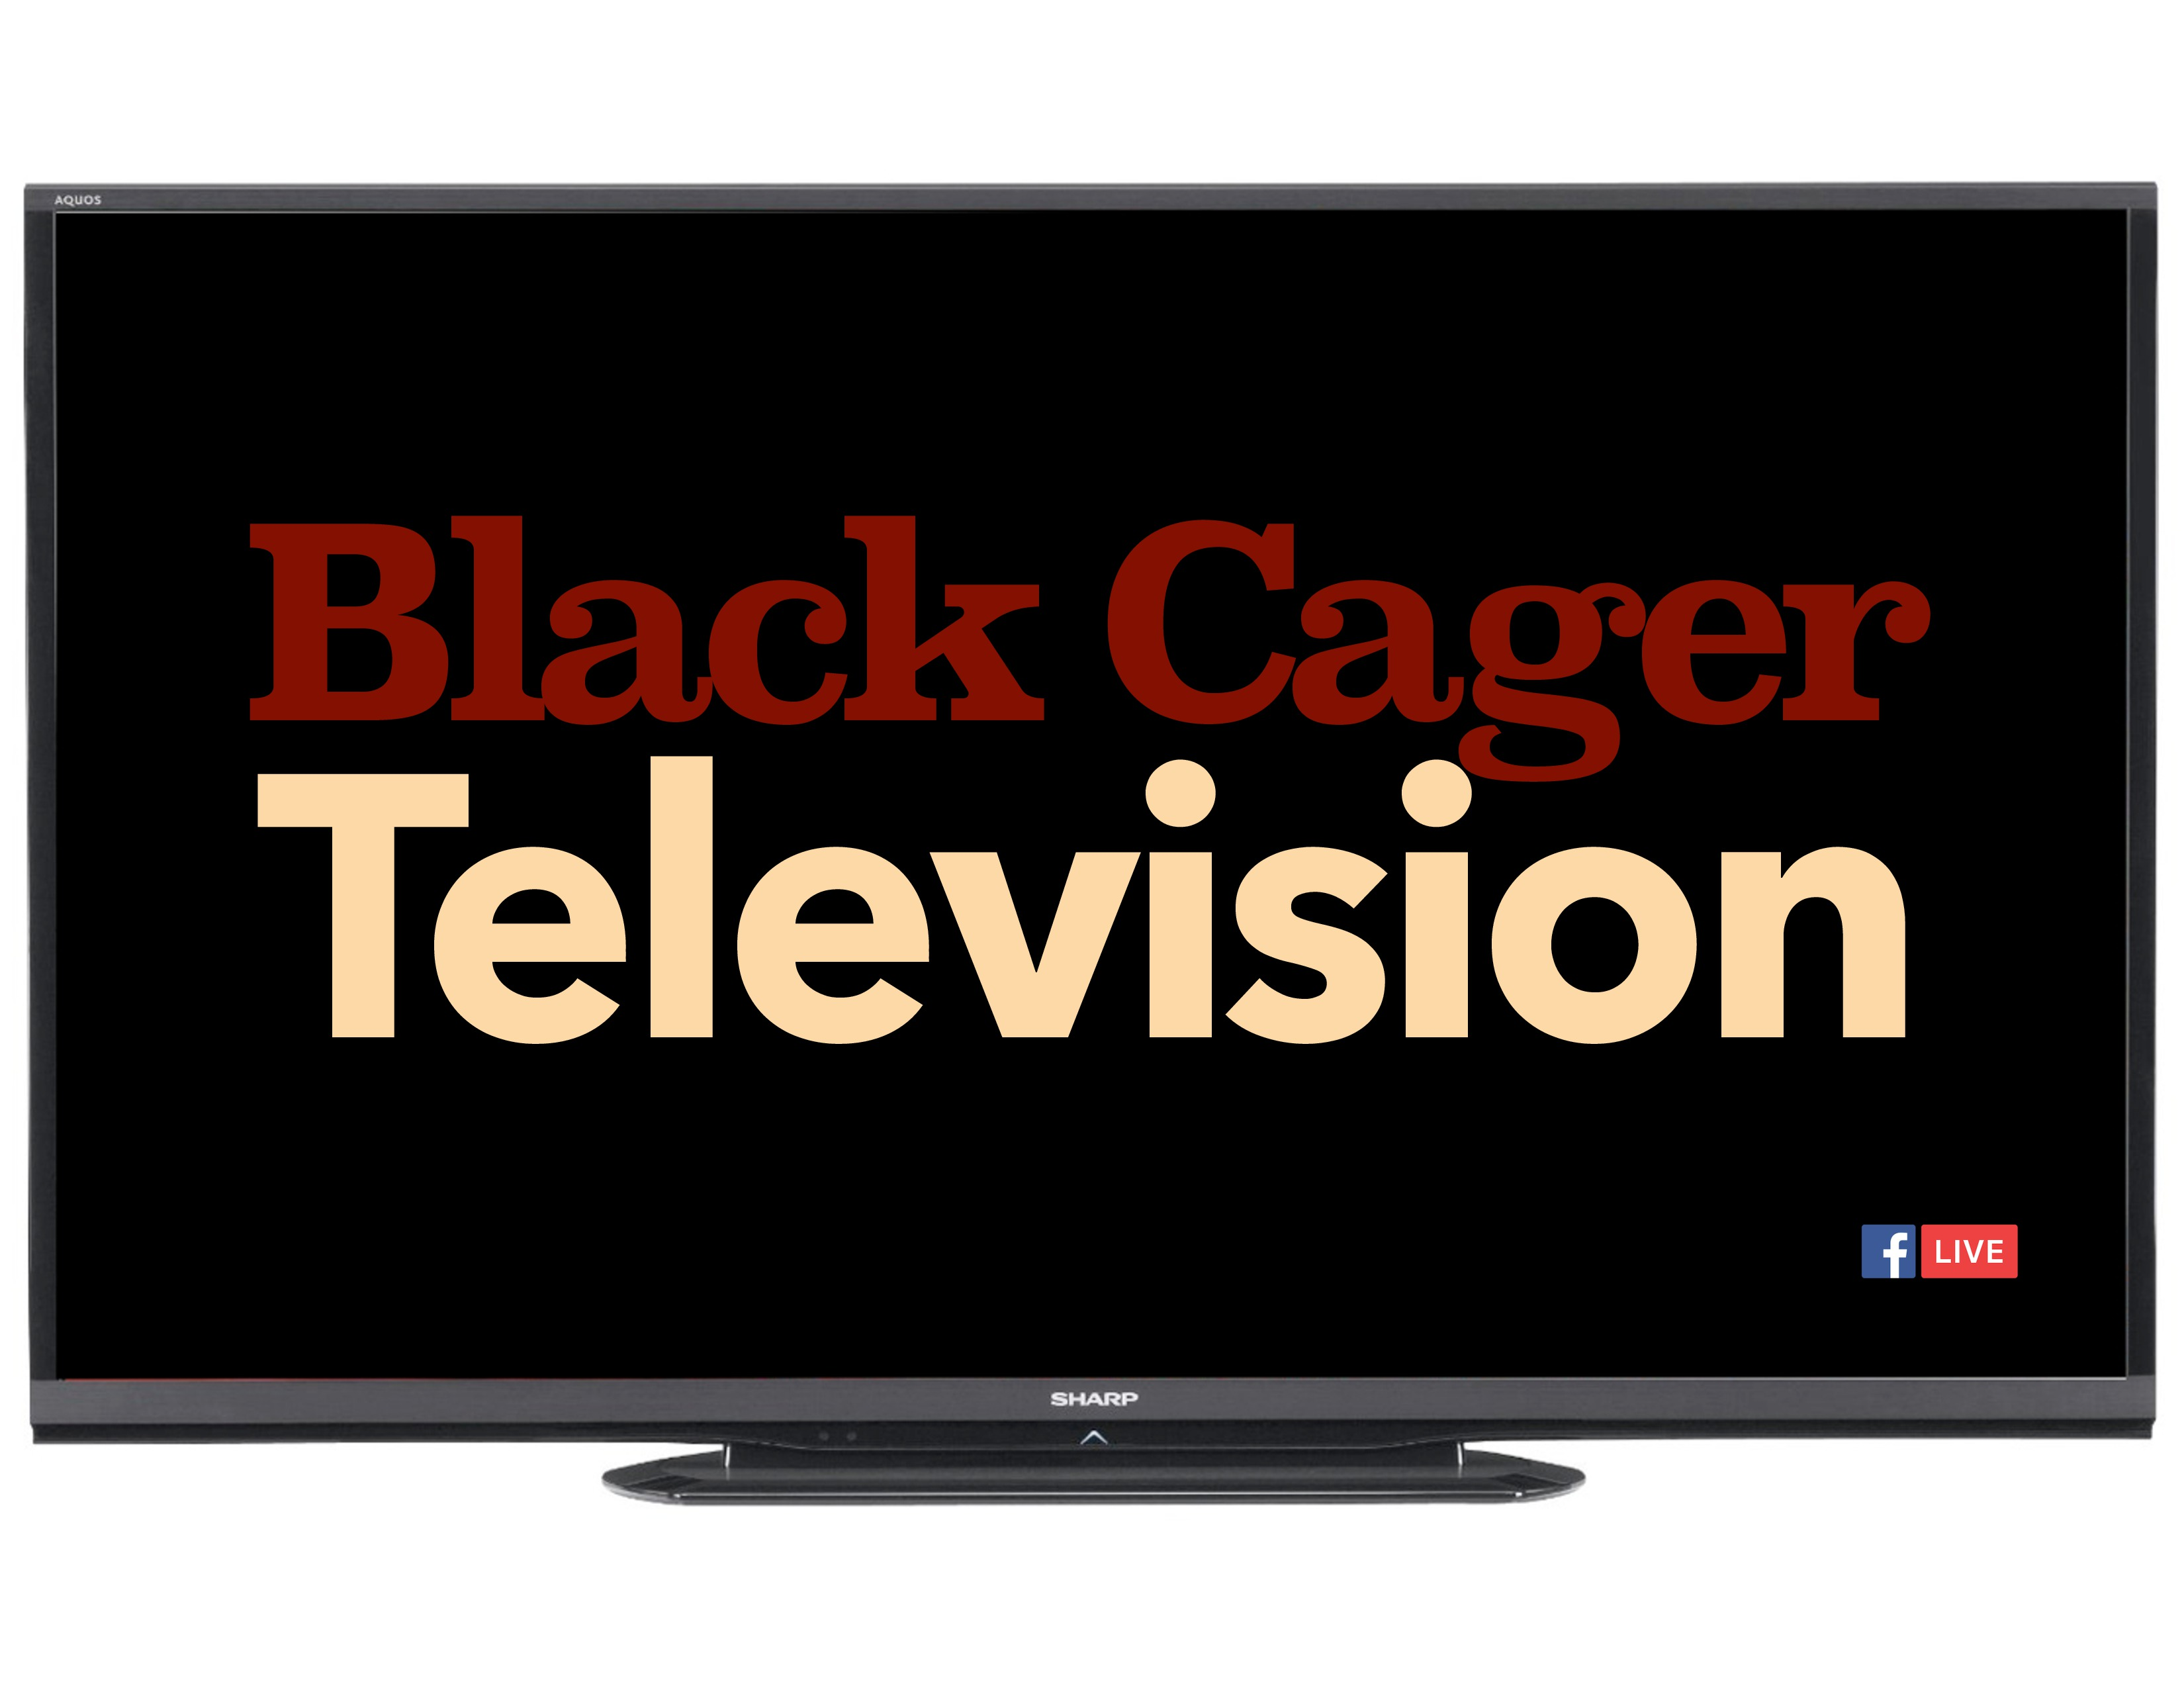 Black Cager - Television Poster-page-0